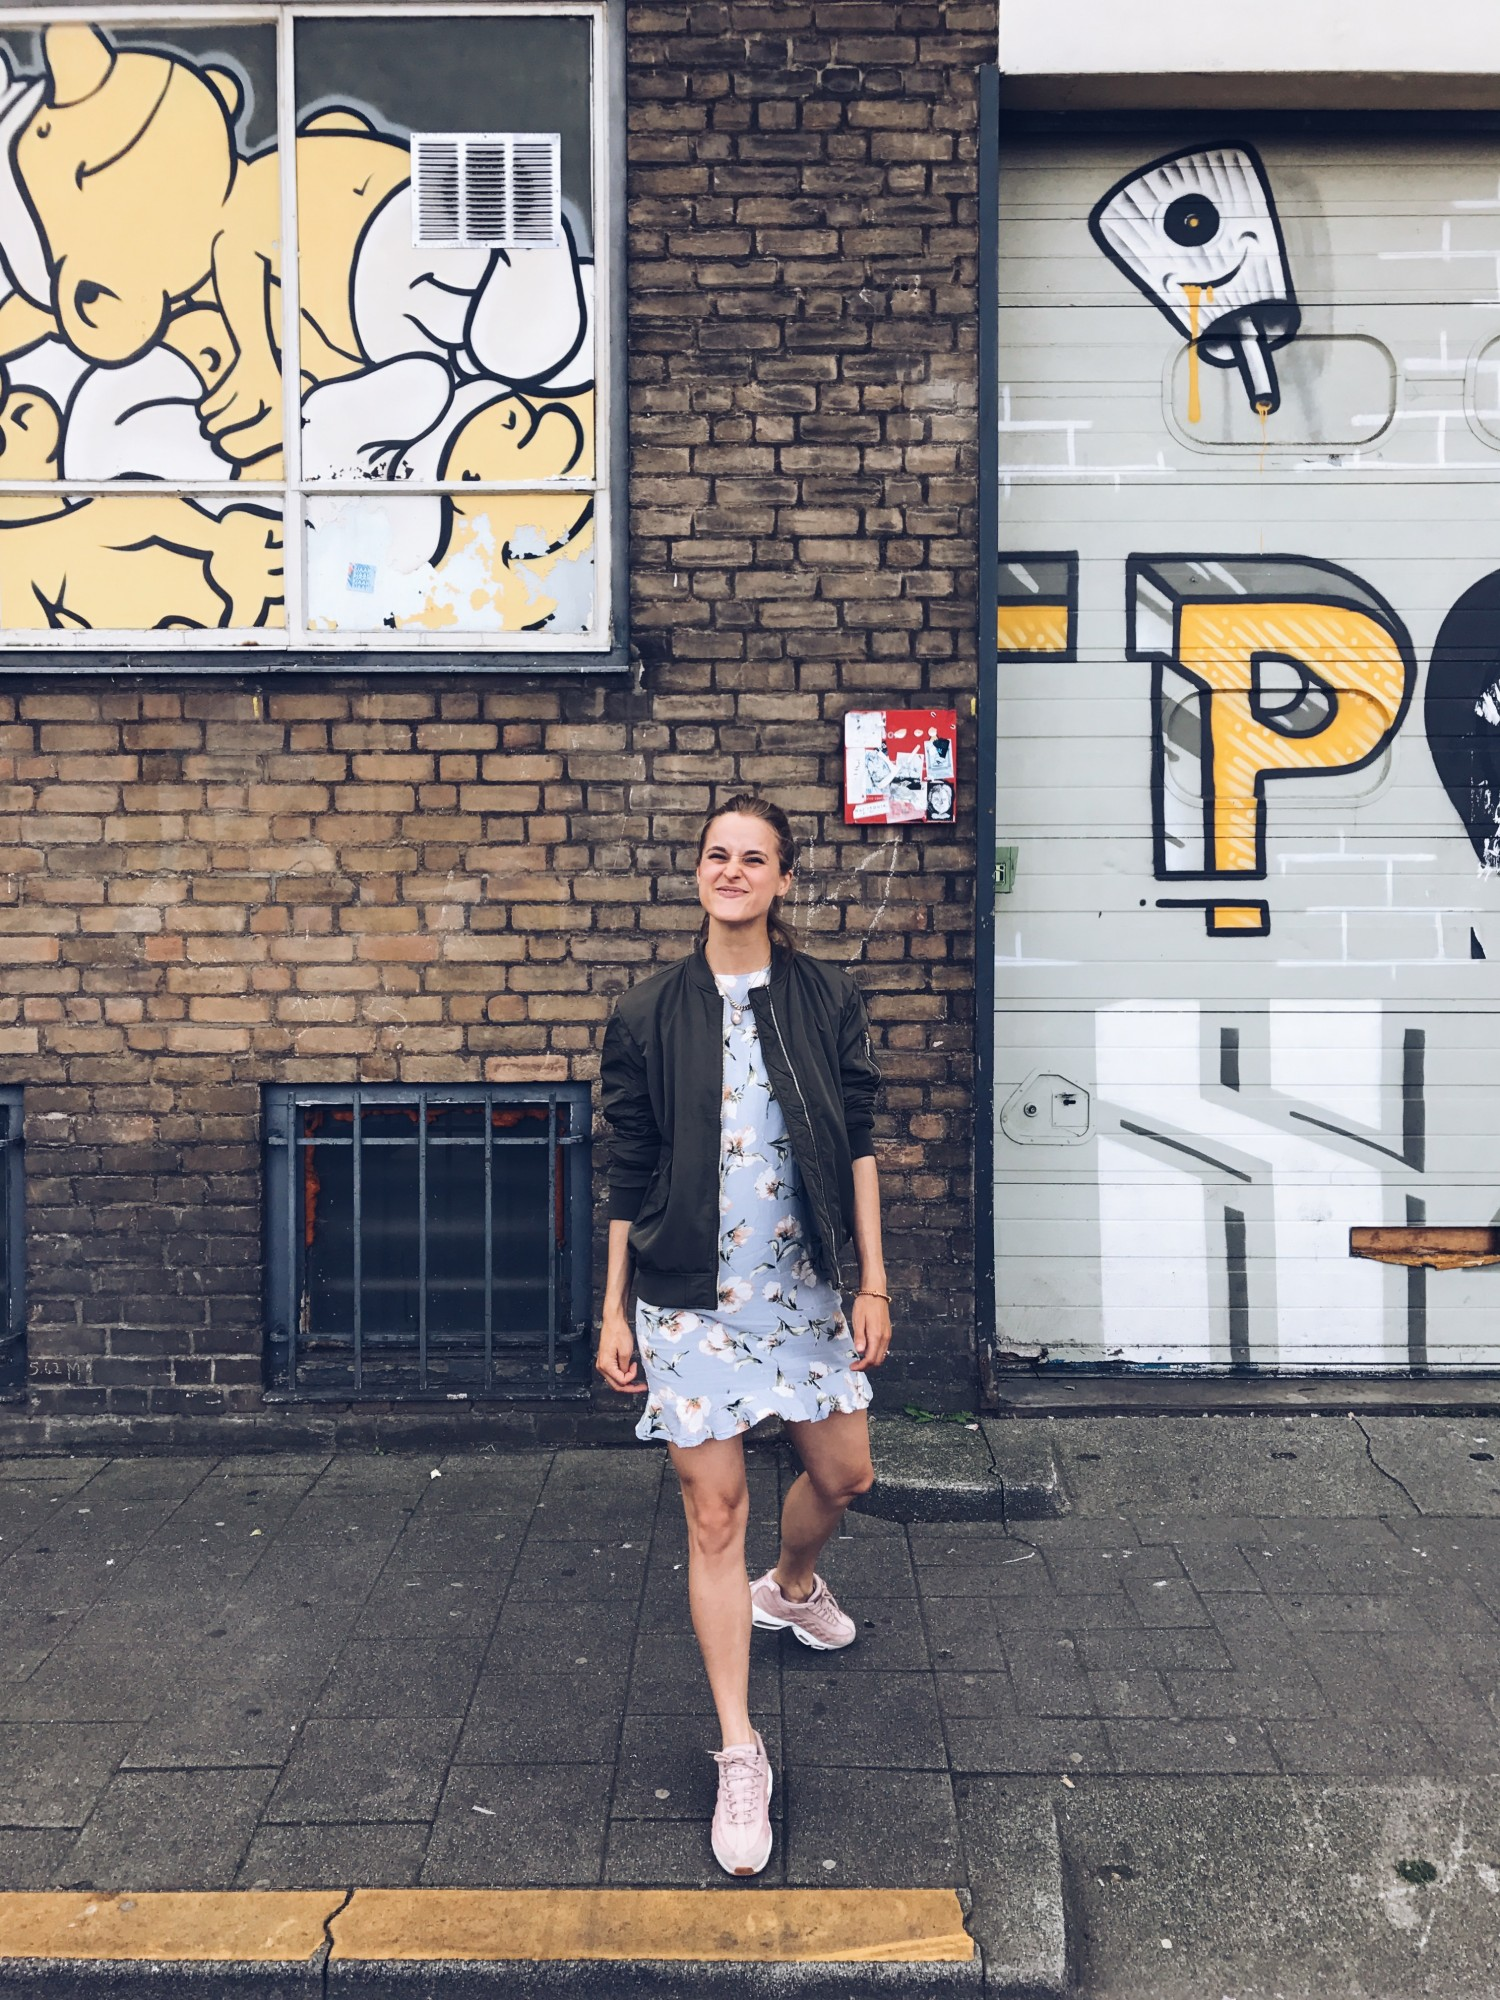 rockpaperdresses, cathrine widunok wichmand, rotterdam guide